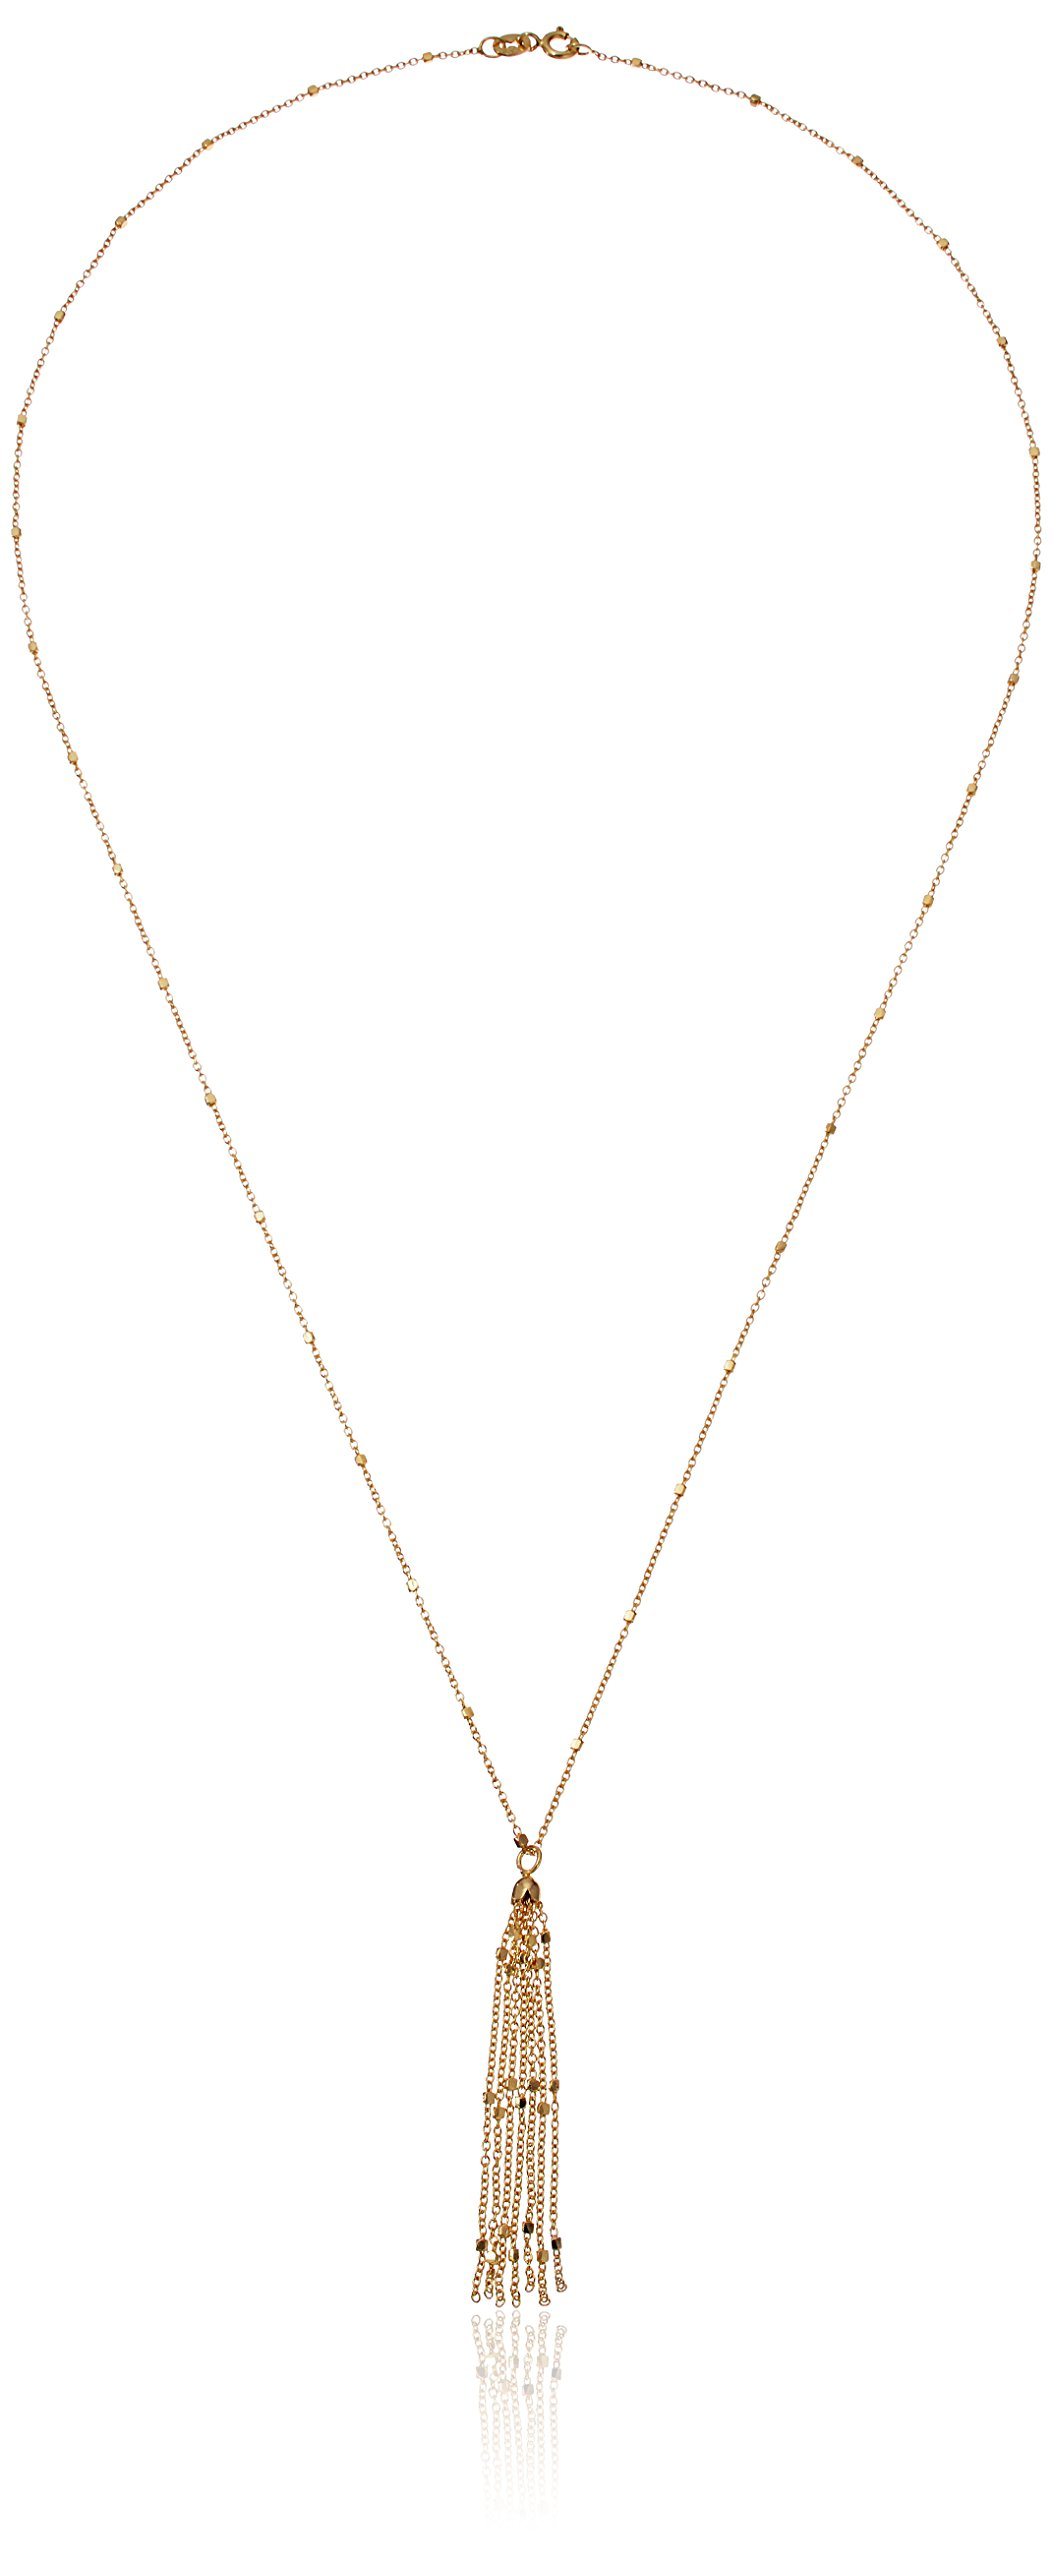 14k Yellow Gold Italian Station Accent with Tassel Dangle Y-Shaped Necklace, 22''